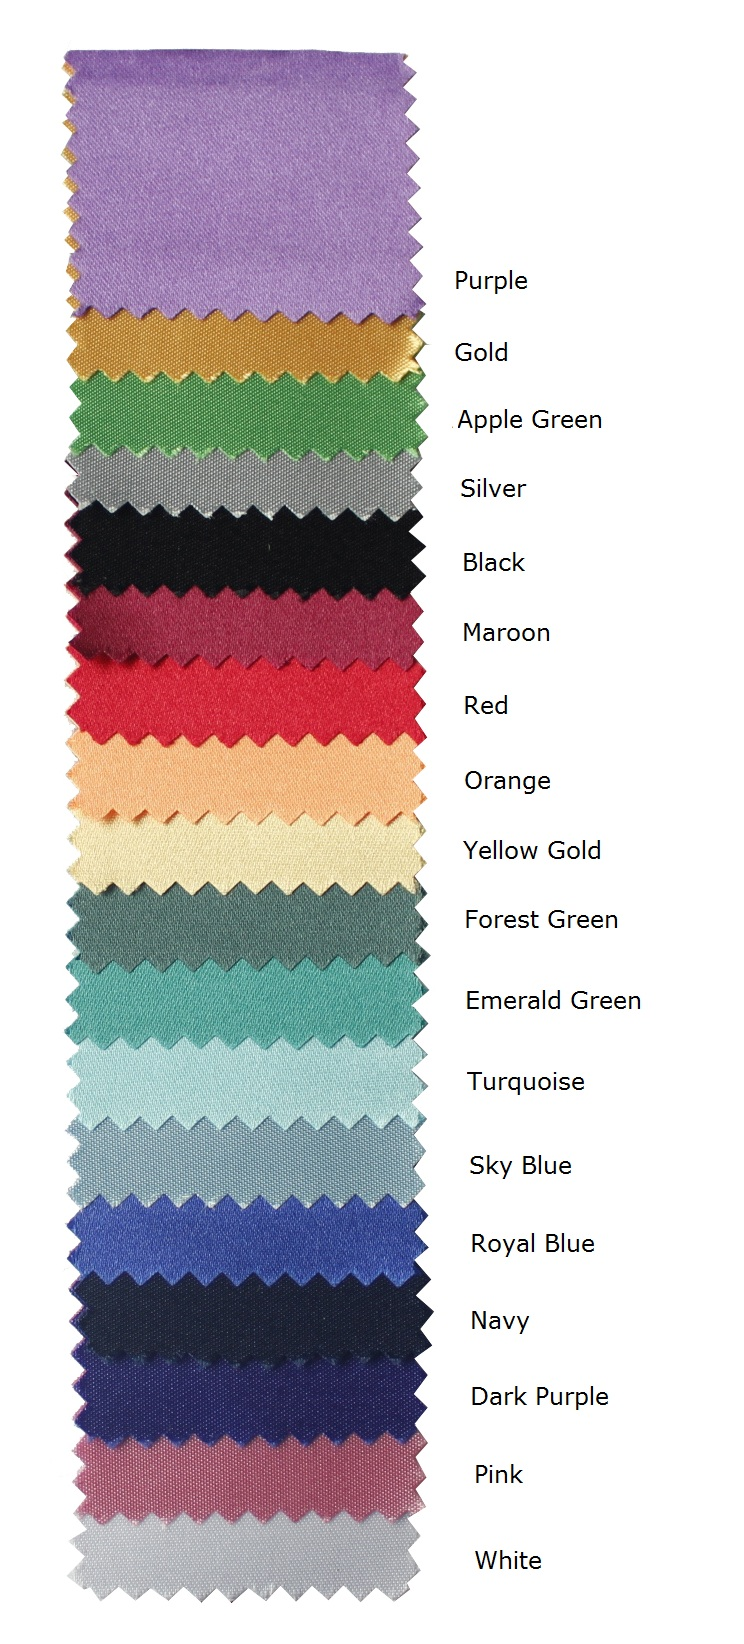 satin color swatch.jpg